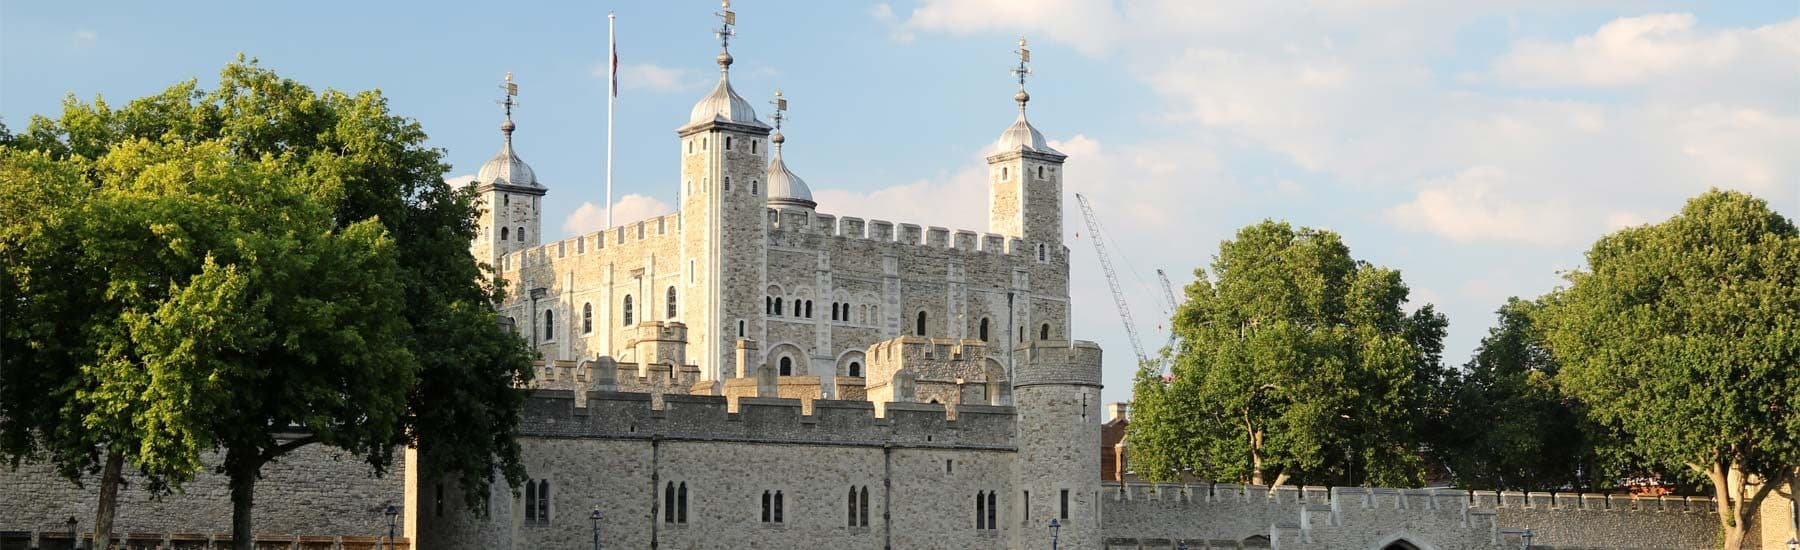 Thames Sunday Evening Cruise, Tower of London